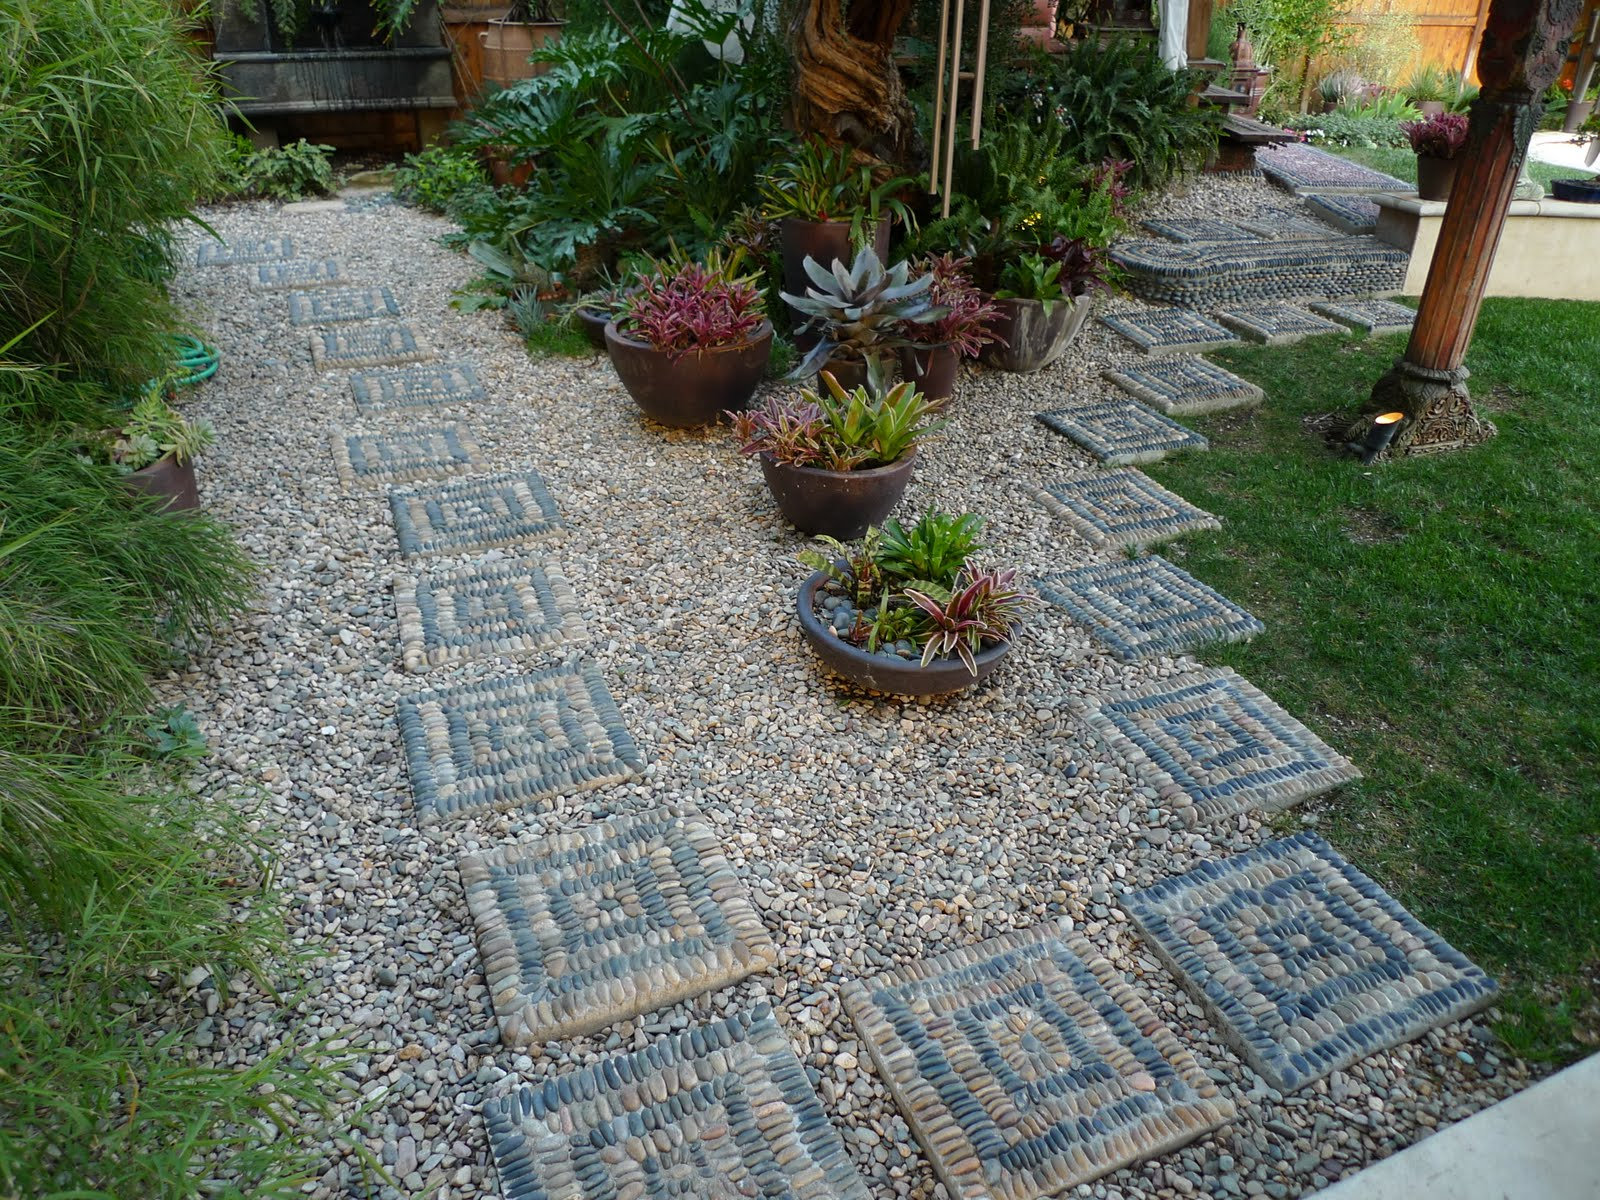 Jeffrey bale 39 s world of gardens building a pebble mosaic for Garden mosaics designs